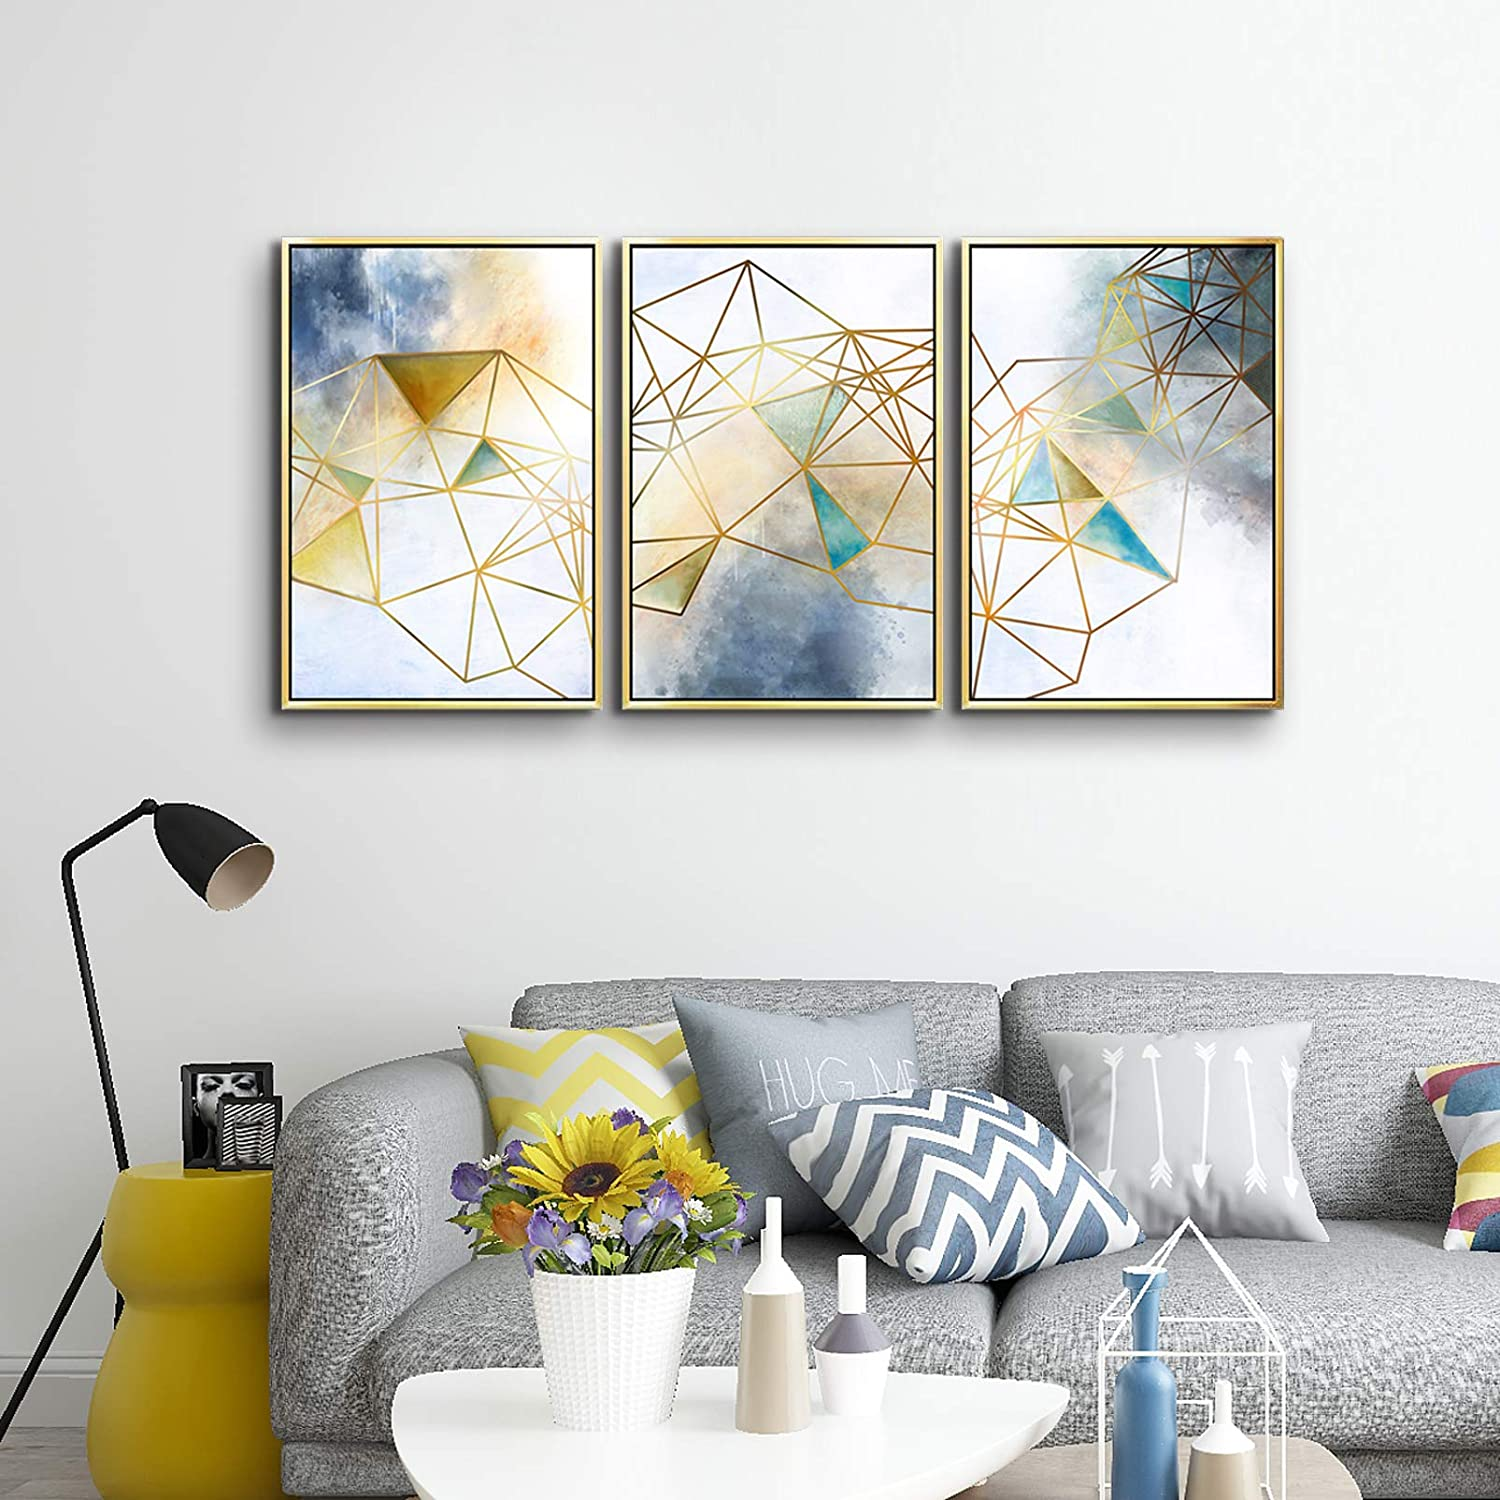 ARTLAND Geometric Wall Decor Abstract Canvas Wall Art Navy Blue Artwork for Bedroom Gallery Wrapped Canvas Giclee Print with White Golden Picture Framed for Living Room Home Decoration 24x48inch